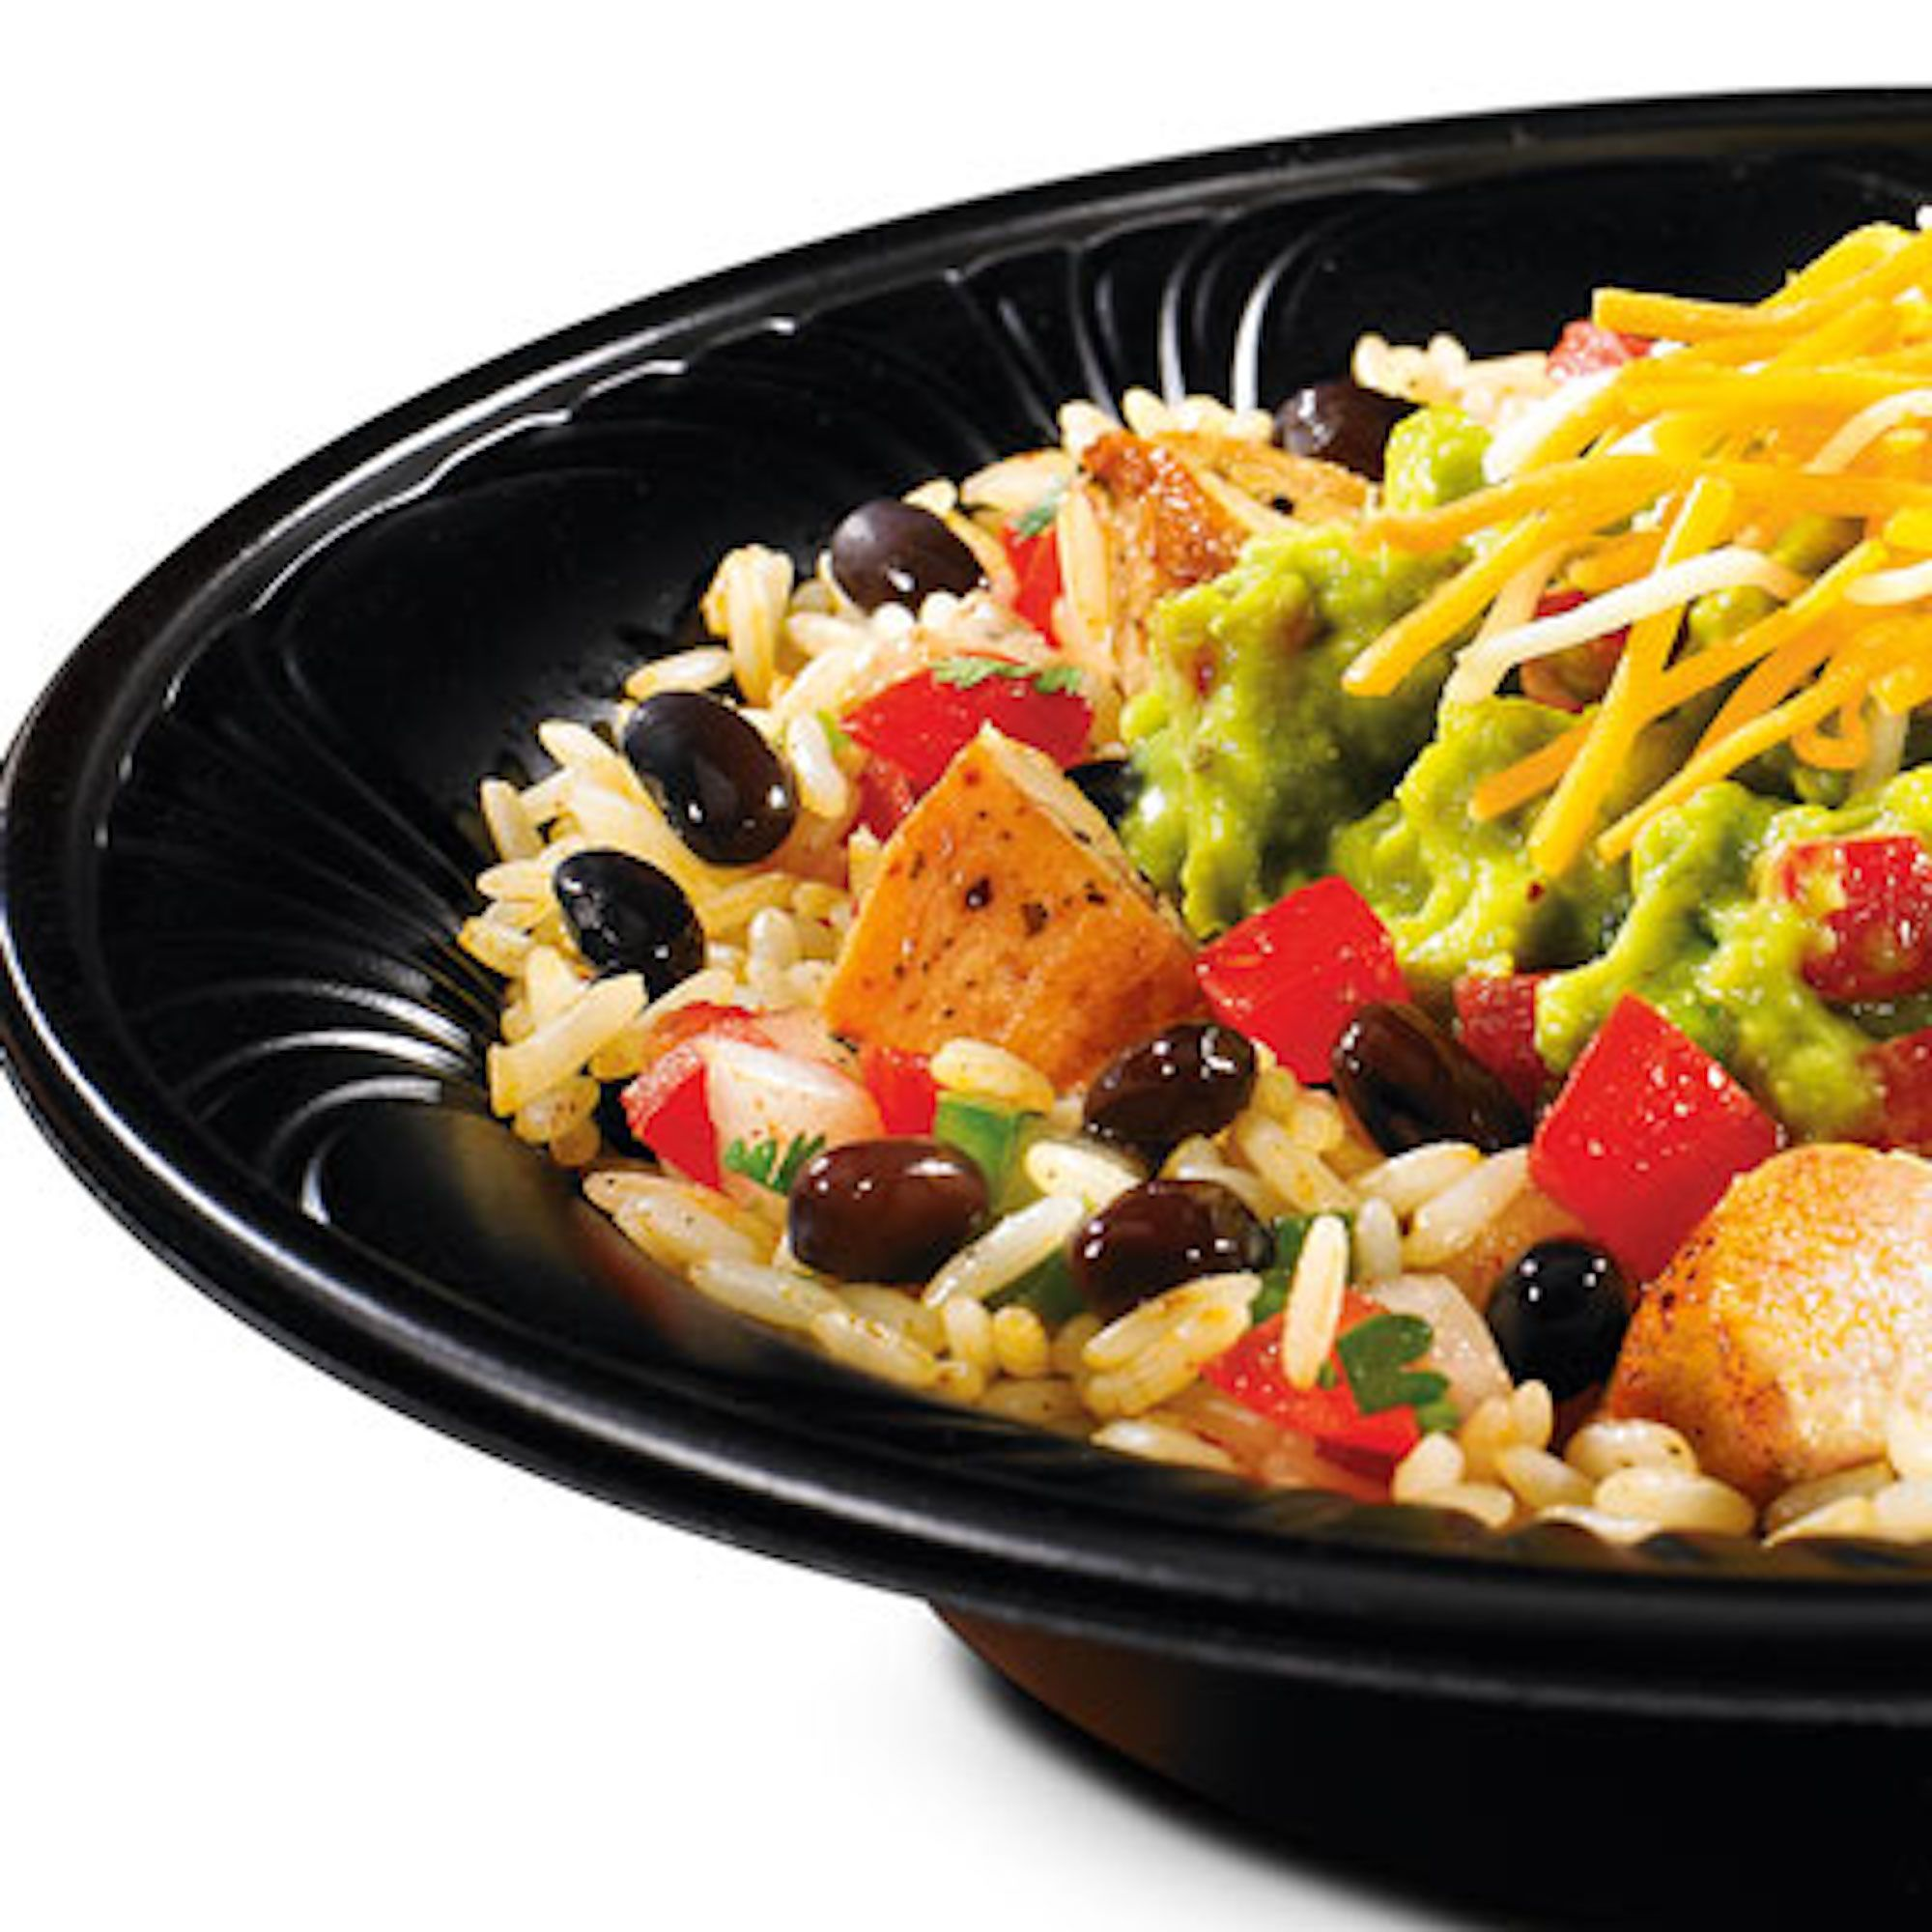 30 Healthy Fast Food Options - Best Choices to Eat Healthy ...